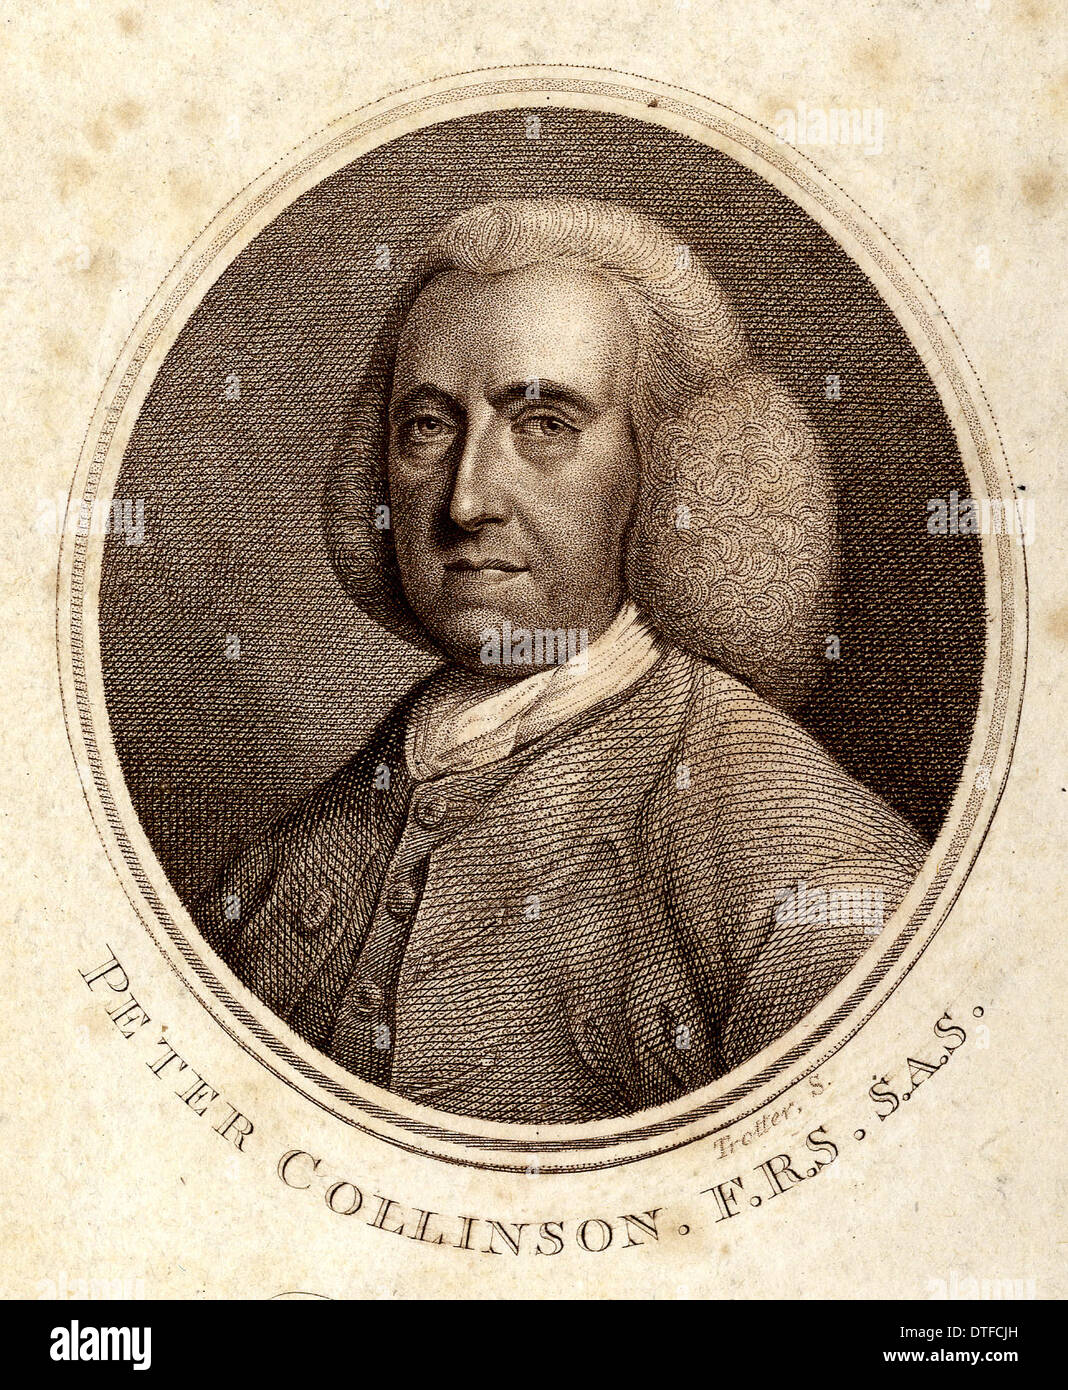 Peter Collinson (1694-1768) - Stock Image